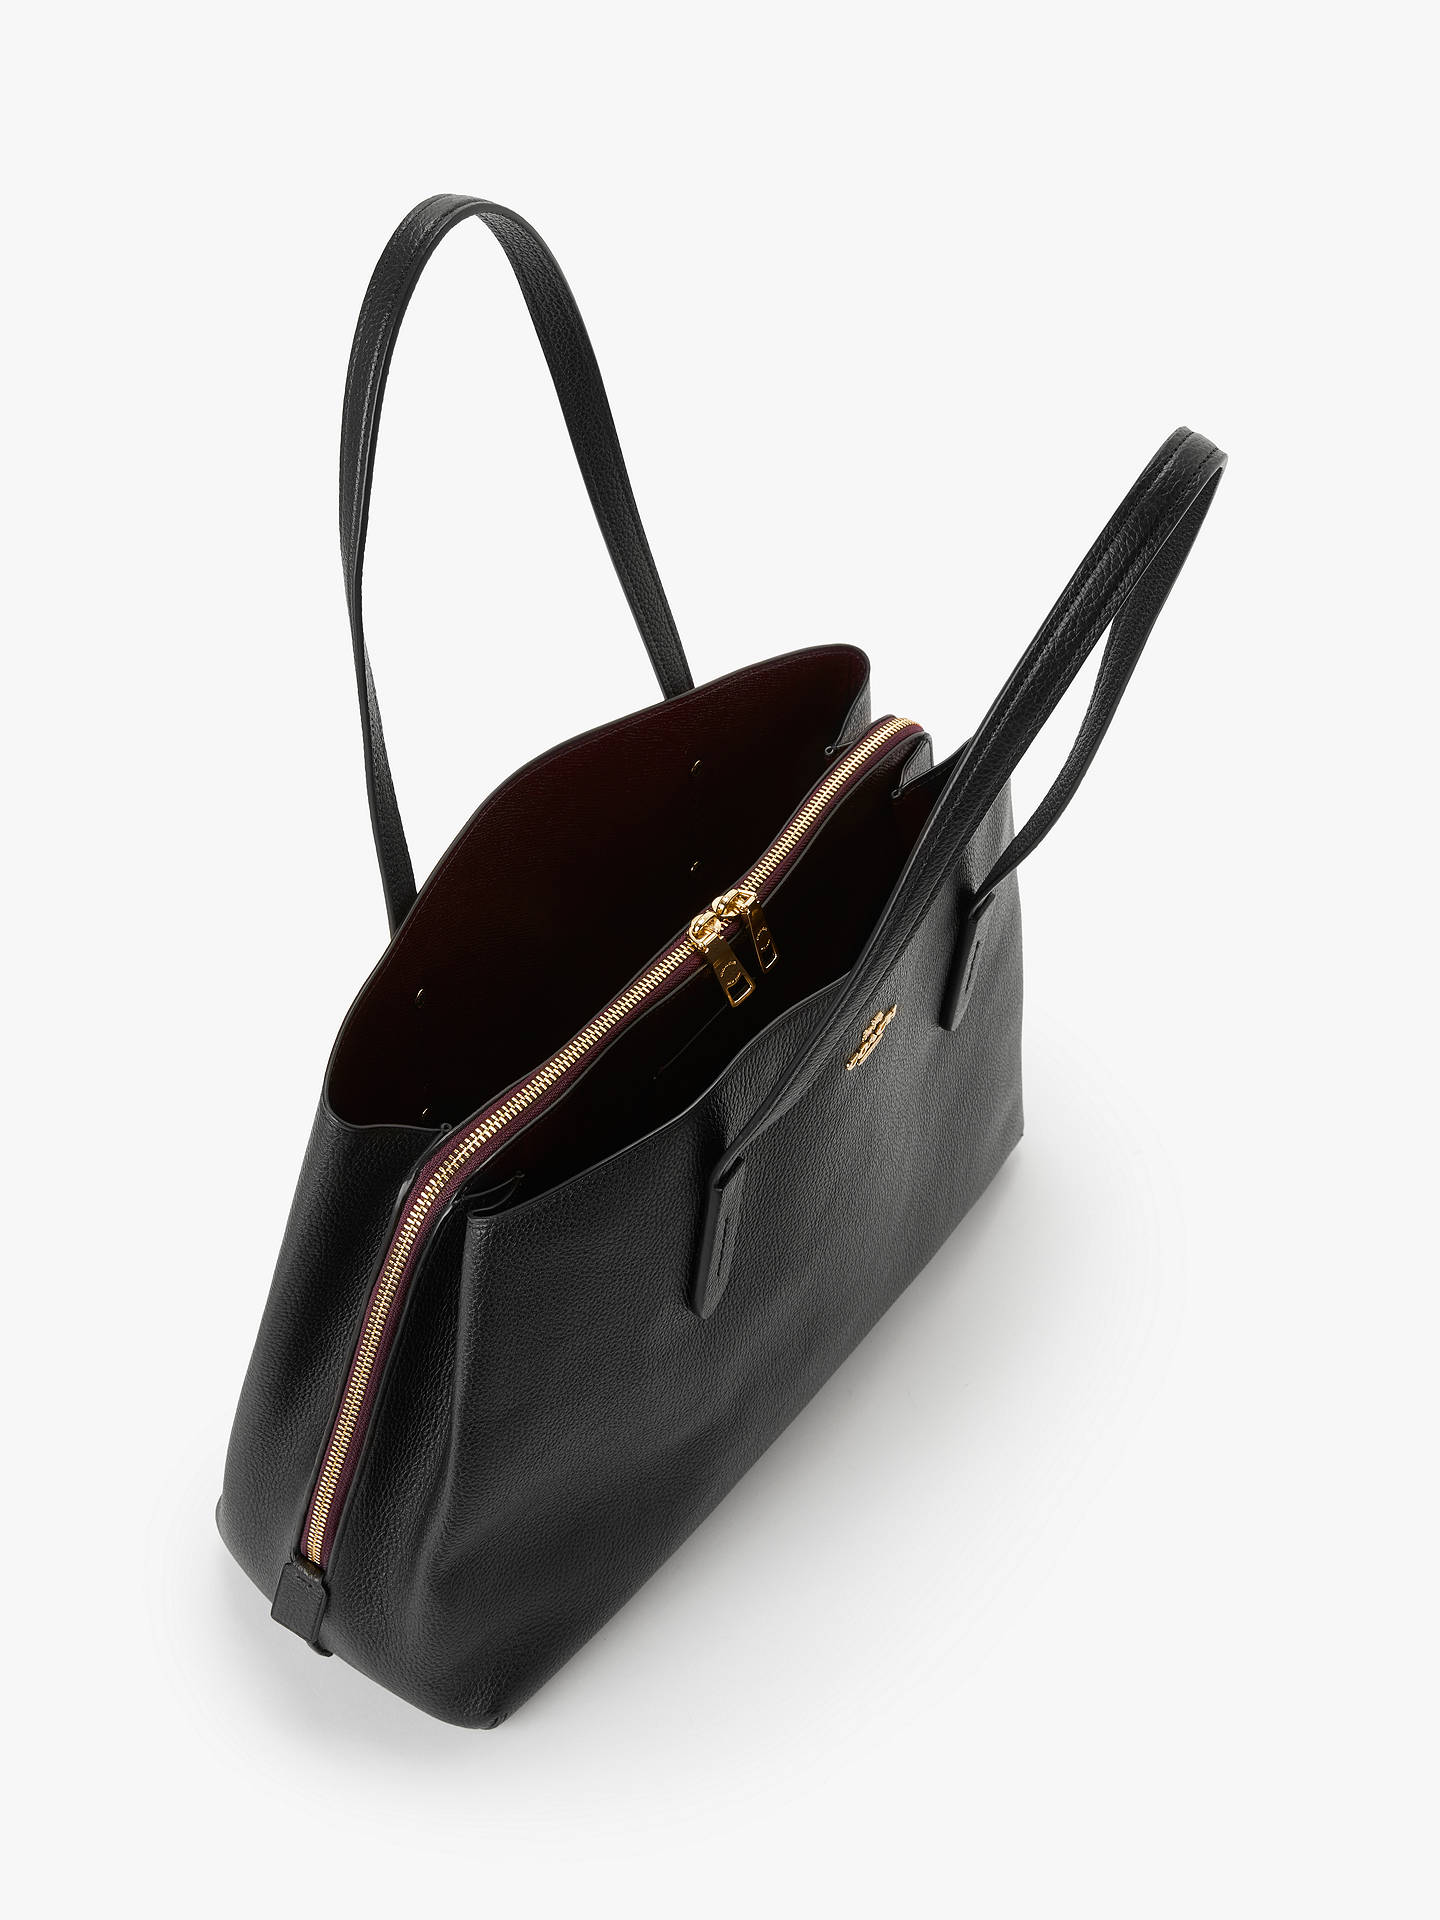 57f0e5fe411752 ... Buy Coach Charlie 40 Leather Carryall Tote Bag, Black Online at  johnlewis.com ...